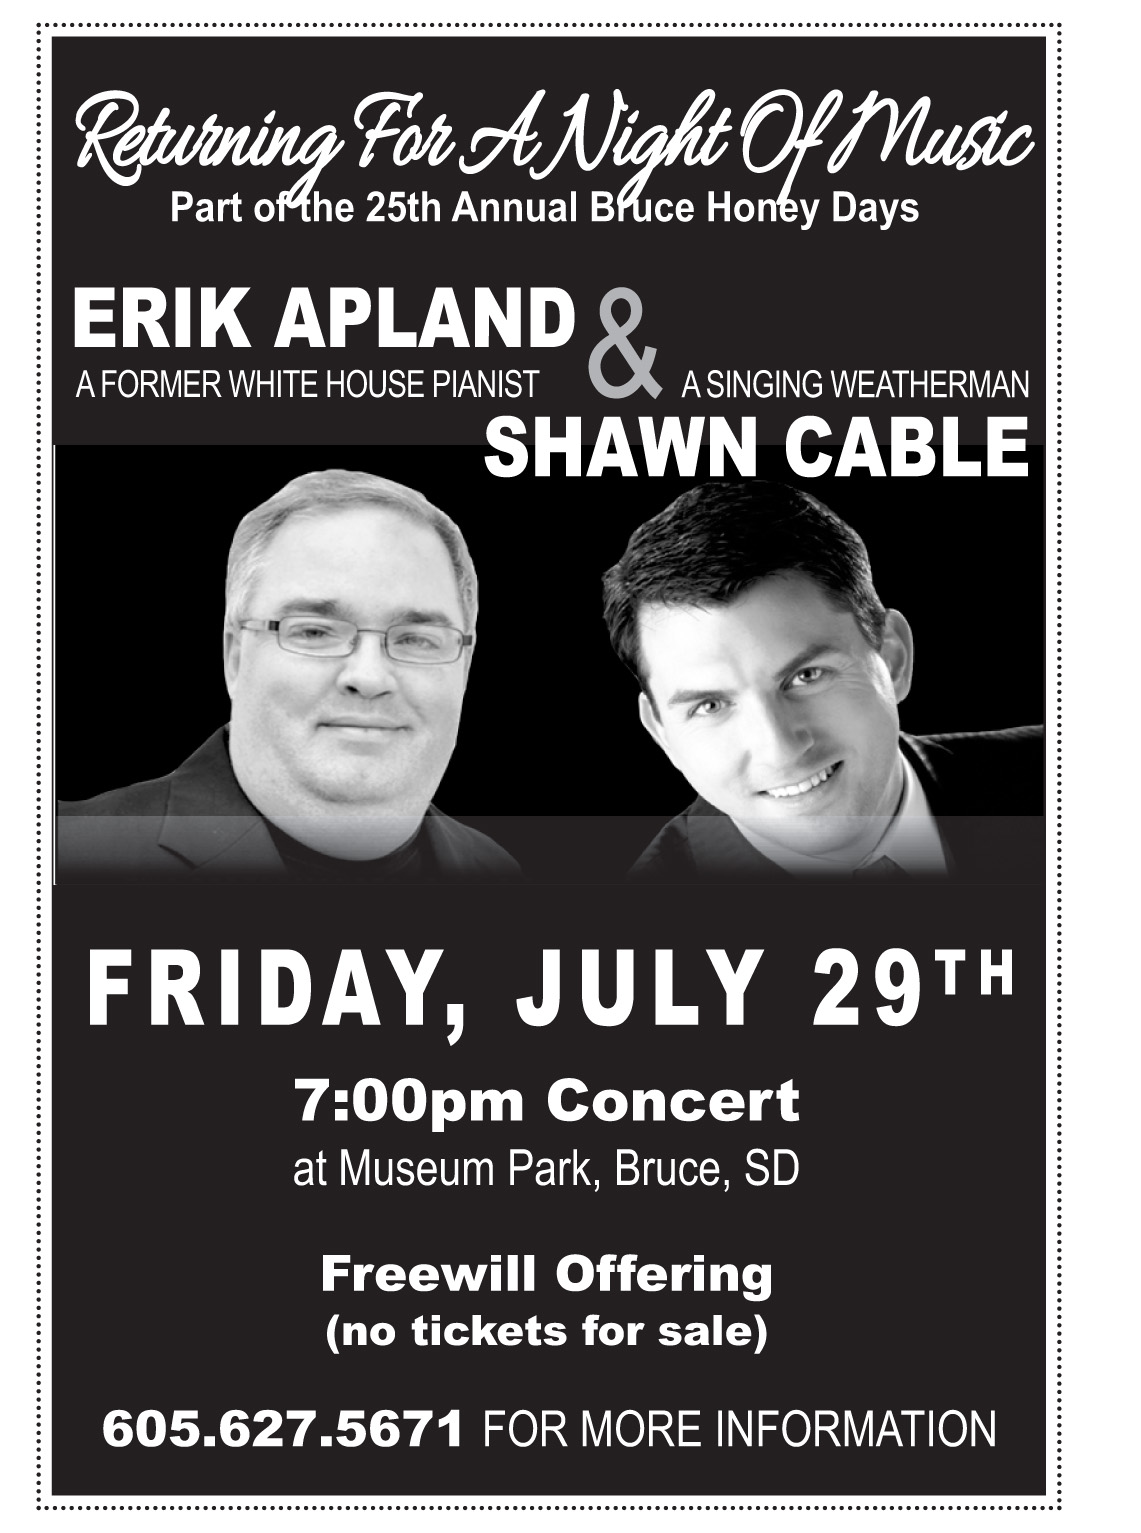 Apland/Cable concert!!